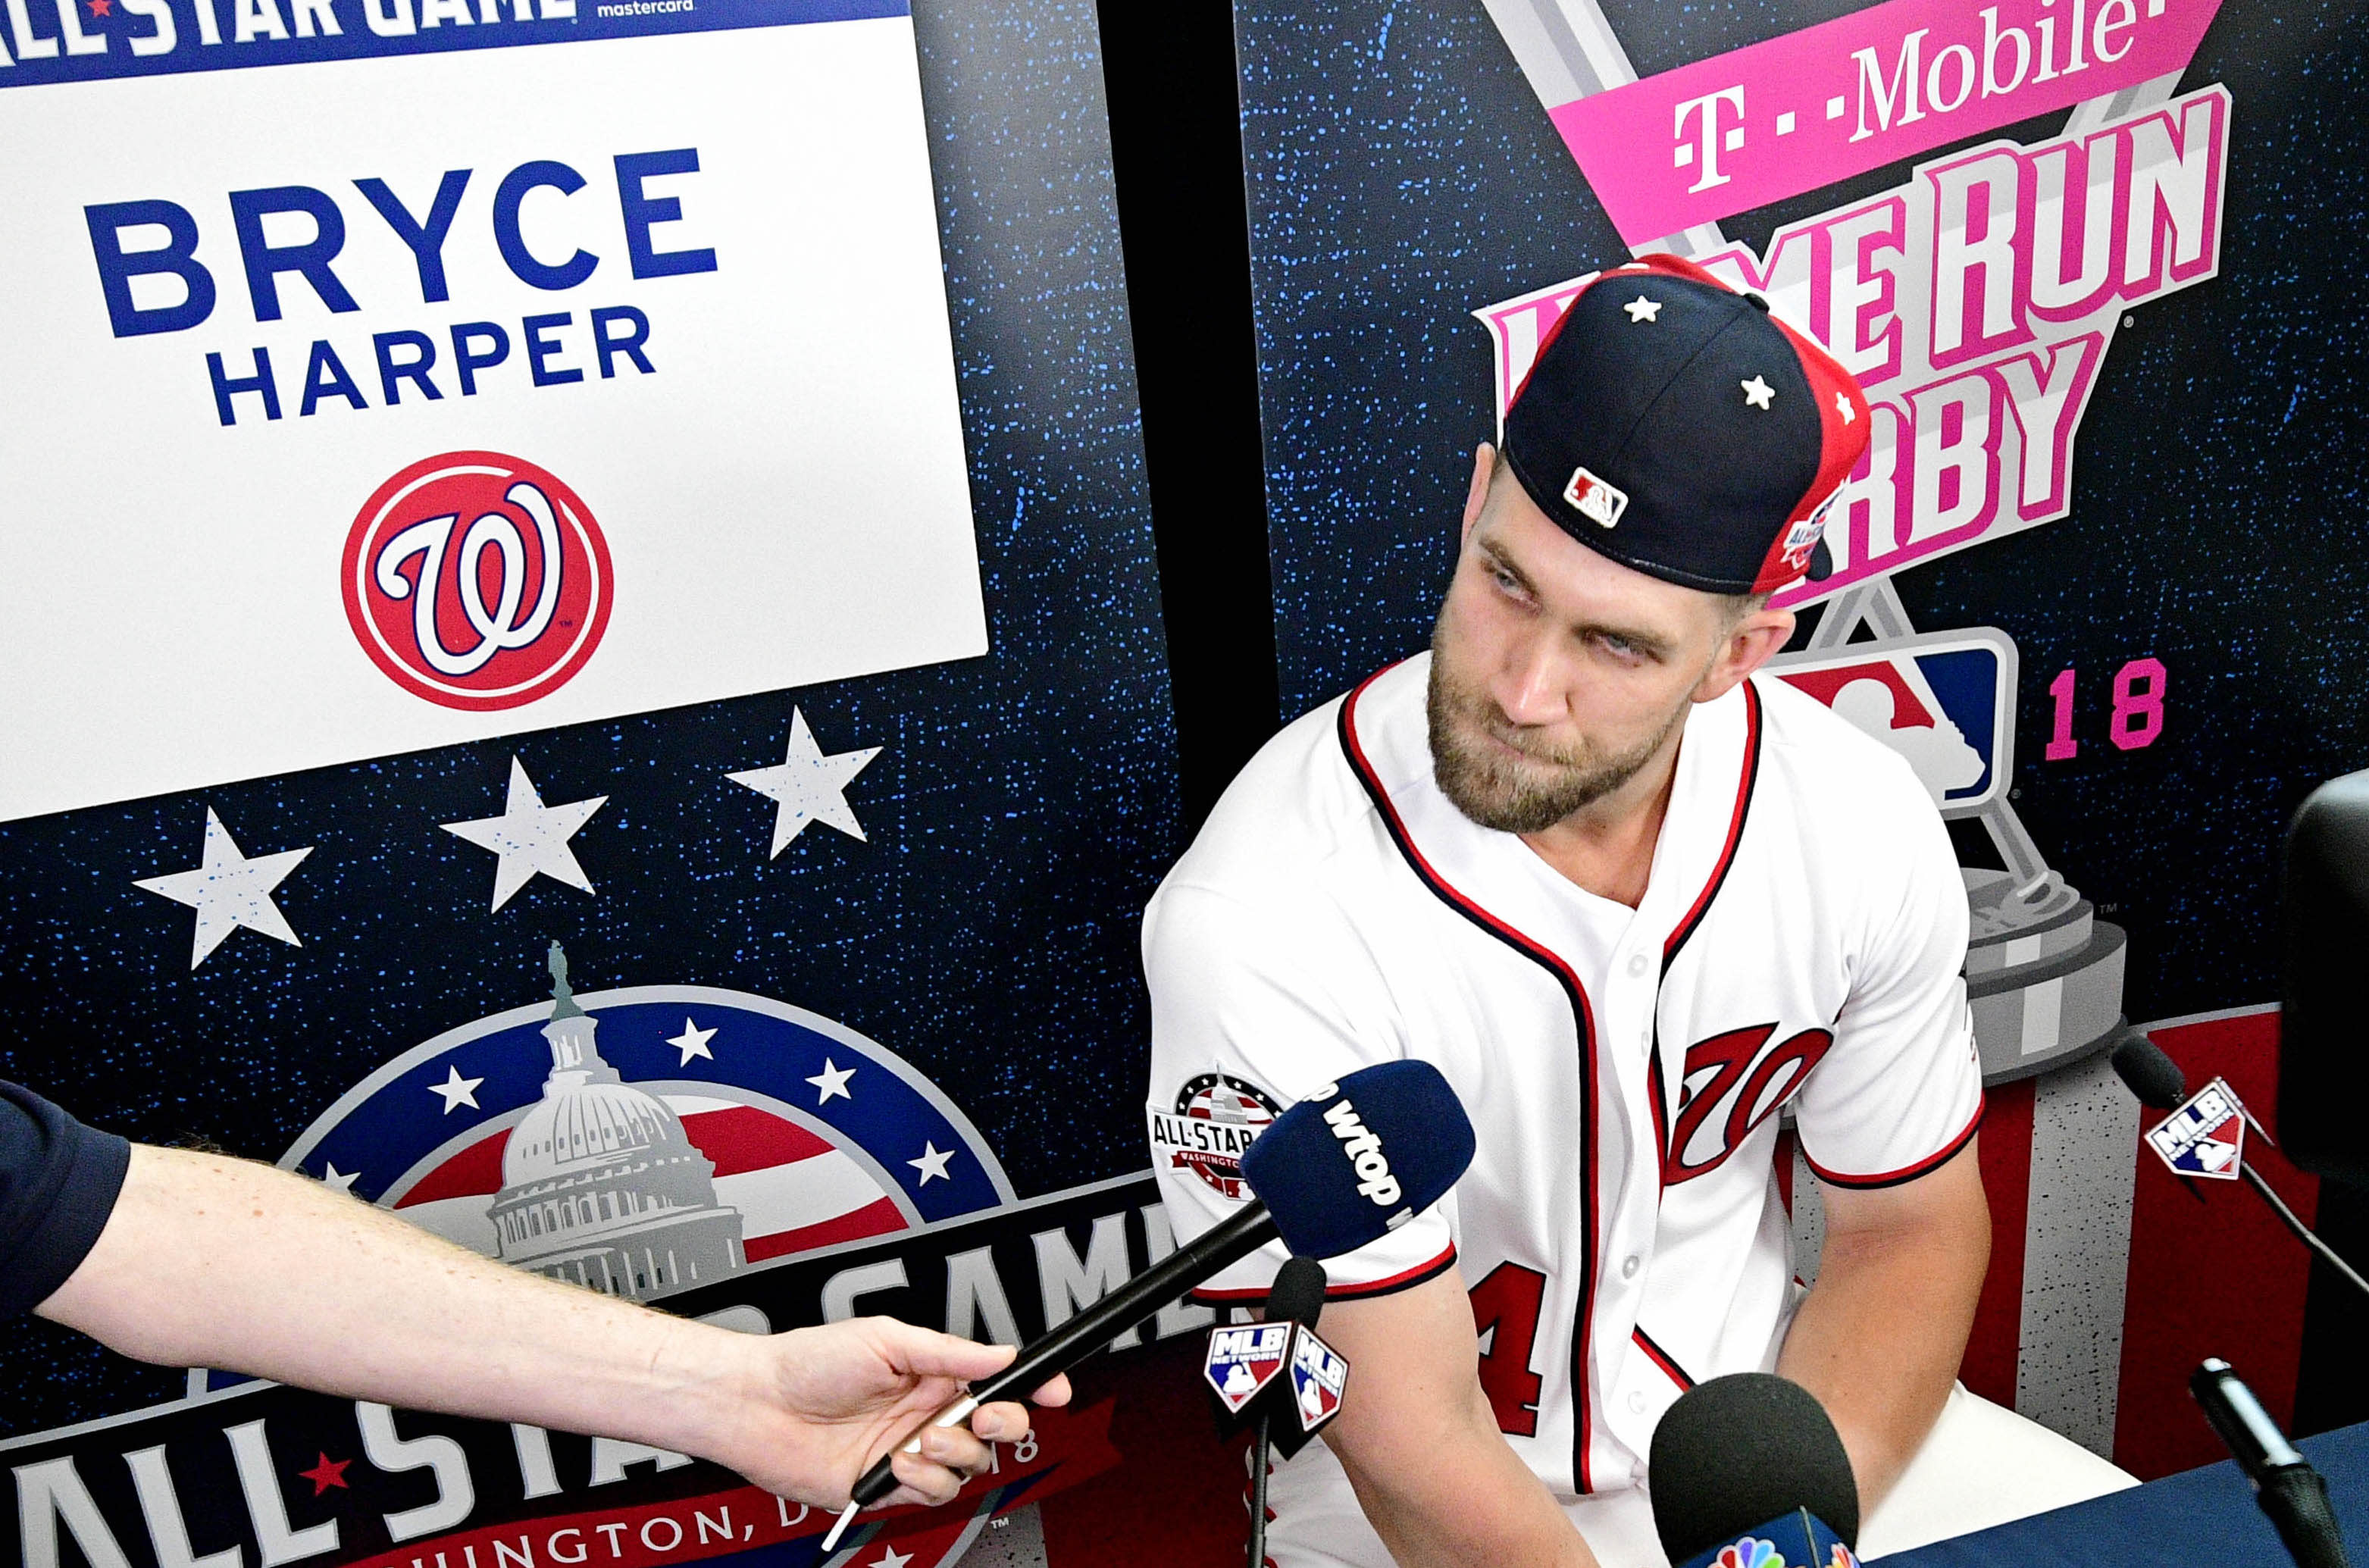 With All-Star Game in Washington, Bryce Harper looks back on baseball life, ahead to uncertain future